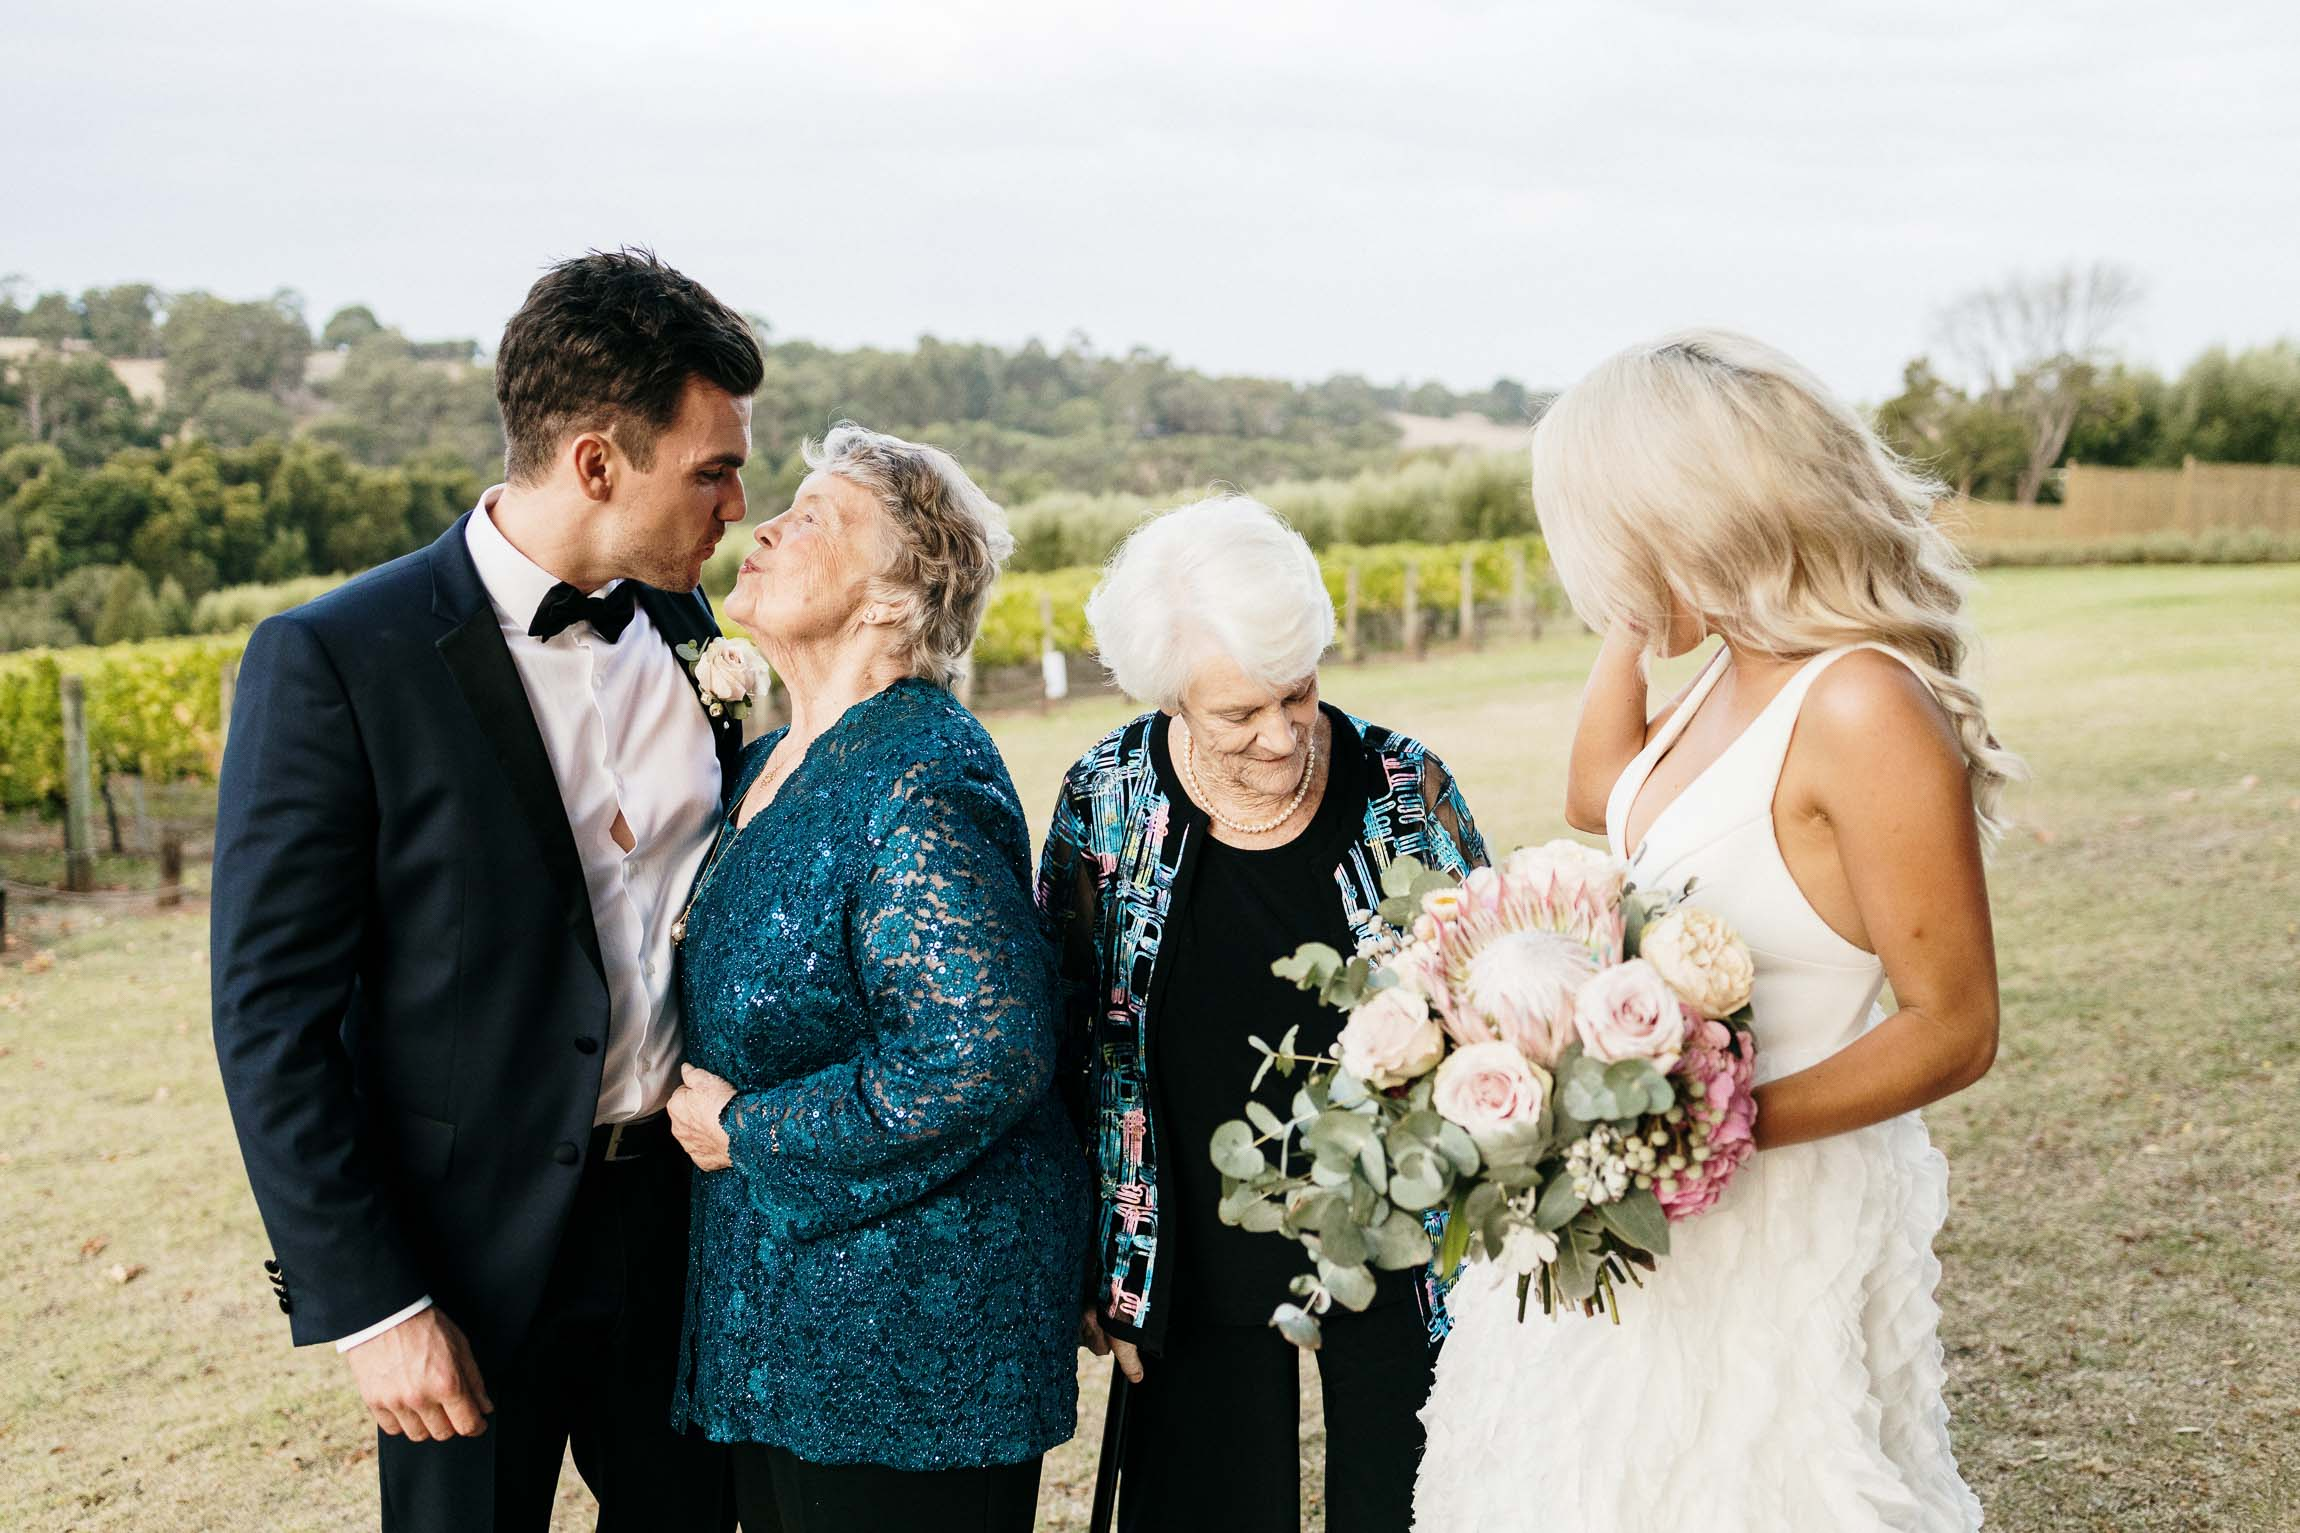 lachlan-scallion-melbourne-victoria-austrlia-mornington-peninsula-candid-relaxed-natural-chilled-wedding-photographyemma-will-tucks-wine-314.jpg